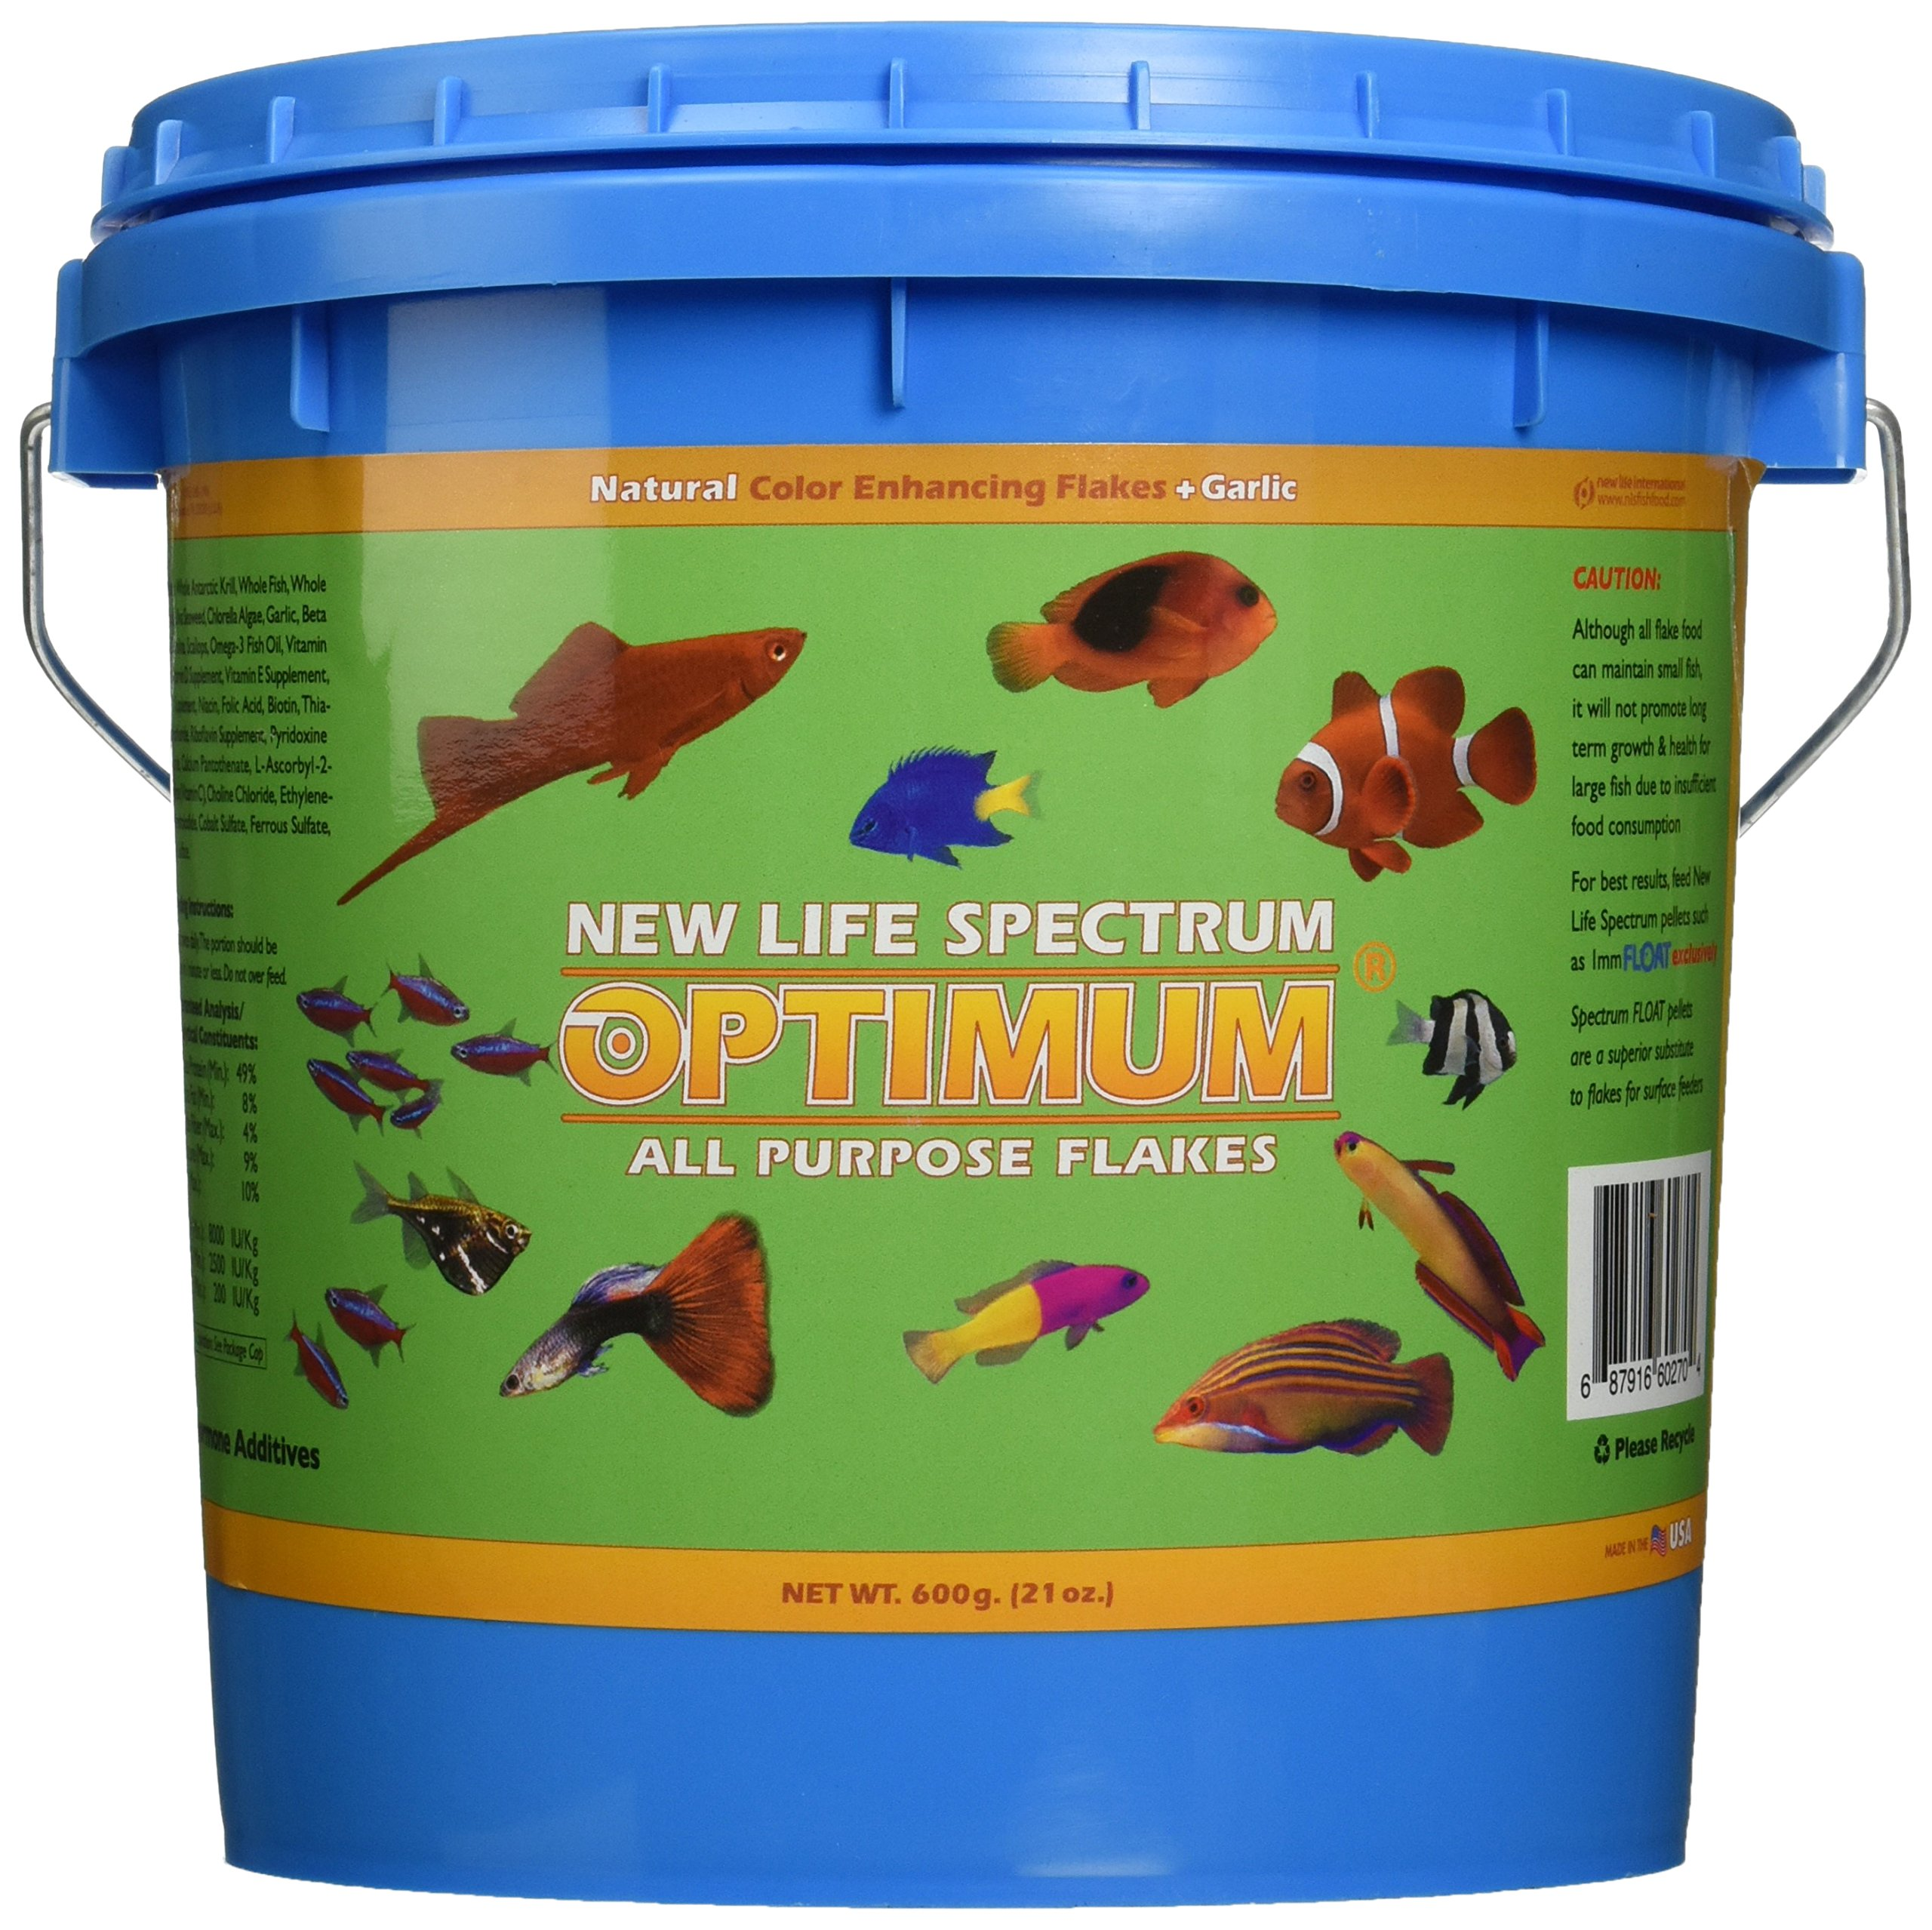 New Life Spectrum Optimum All Purpose Flakes for Fish, 600gm